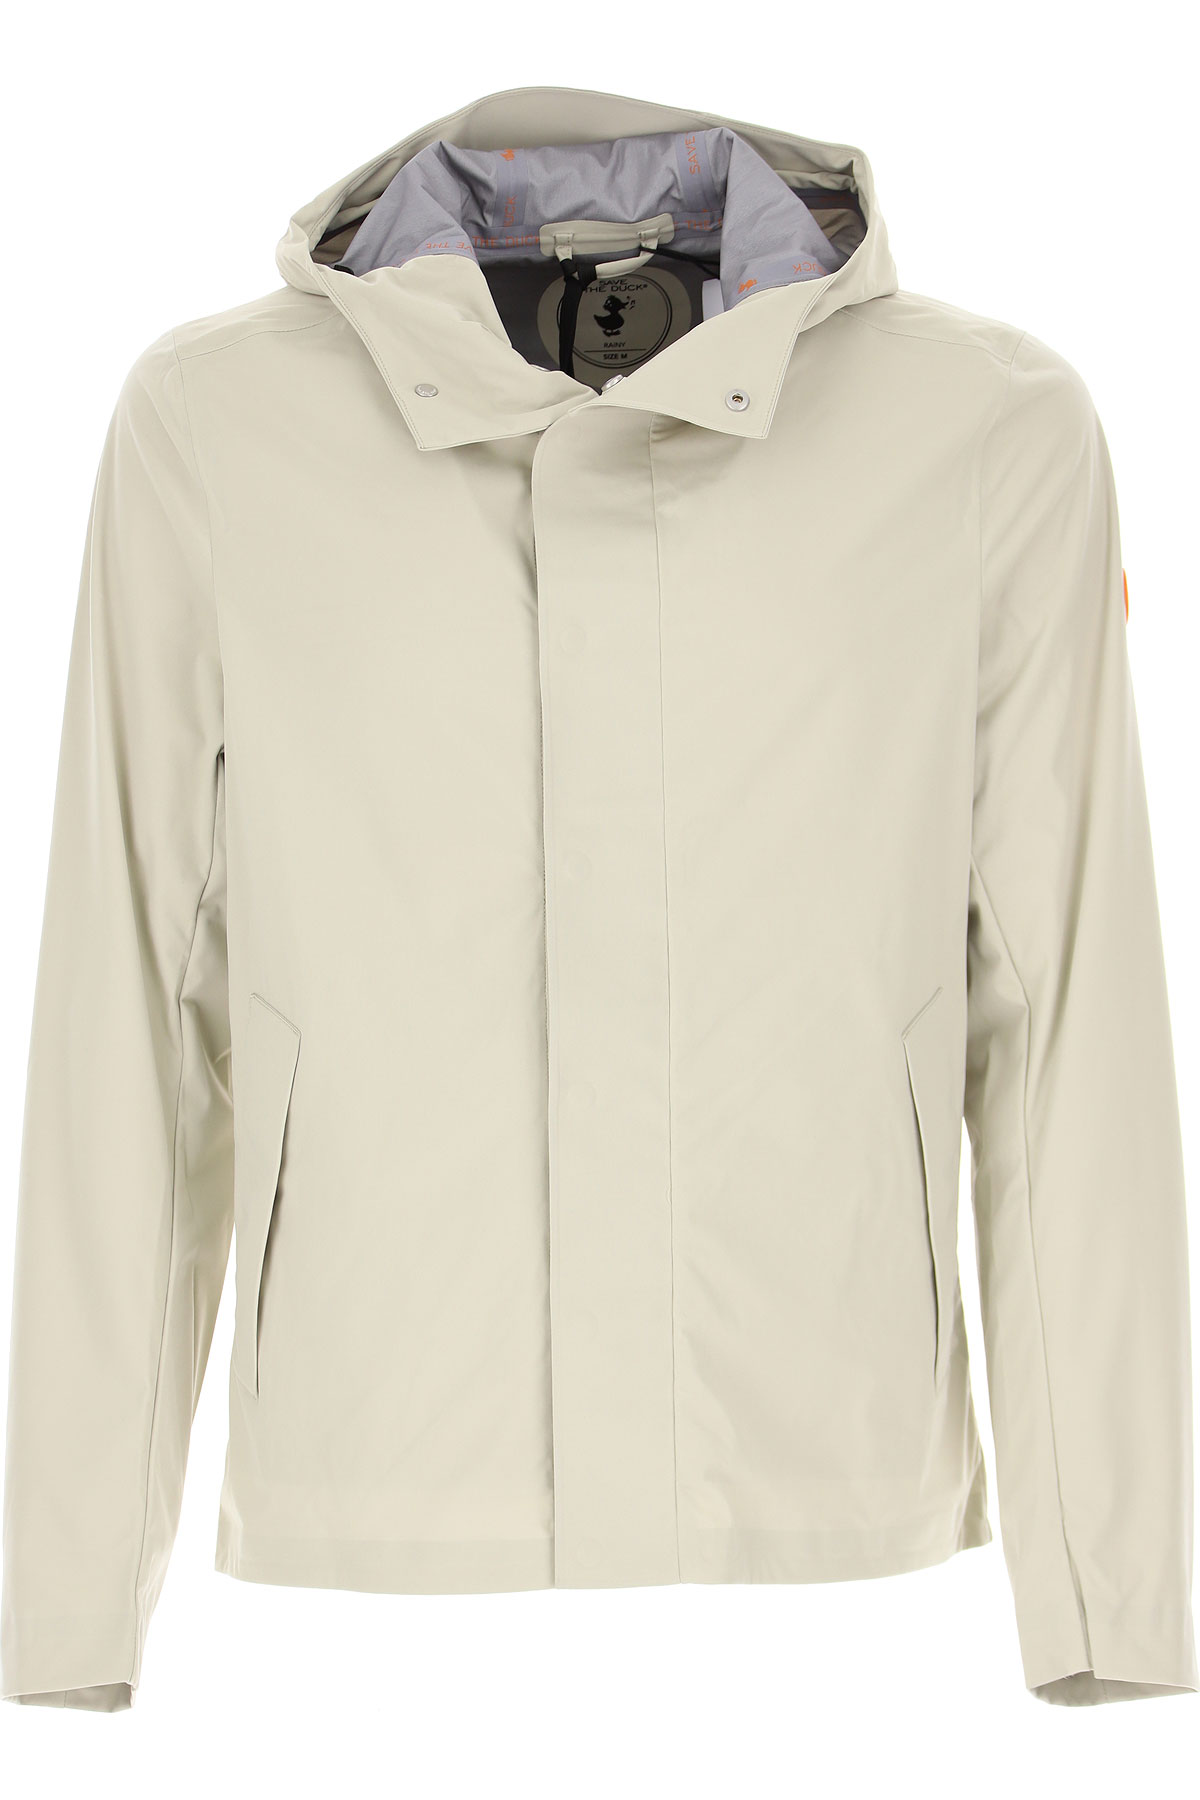 Save the Duck Jacket for Men On Sale, Beige, polyester, 2019, L M S XL